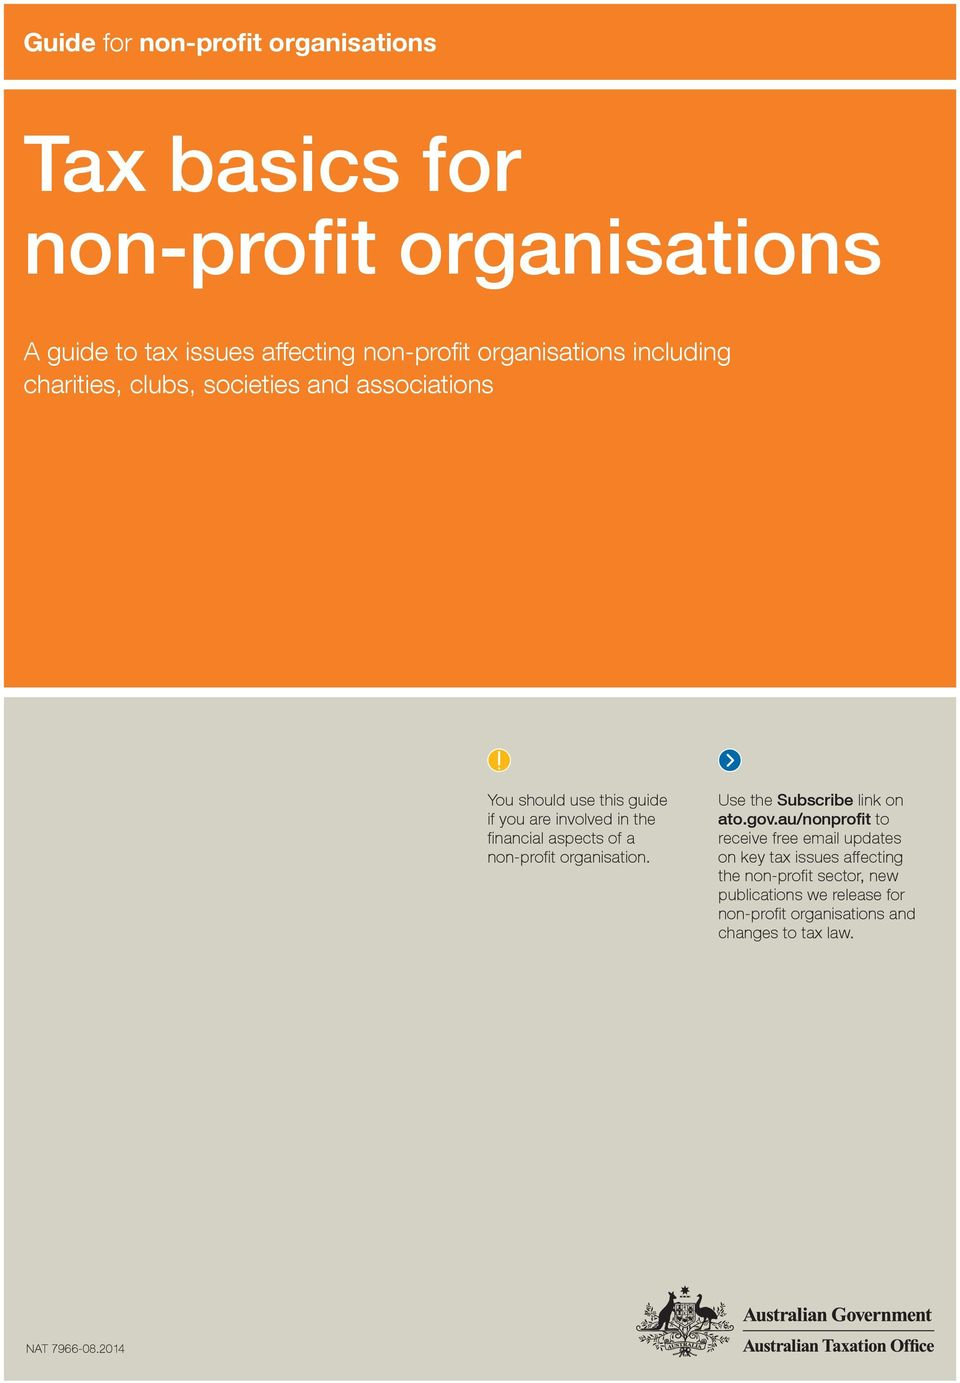 financial aspects of a non profit organisation. Use the Subscribe link on ato.gov.